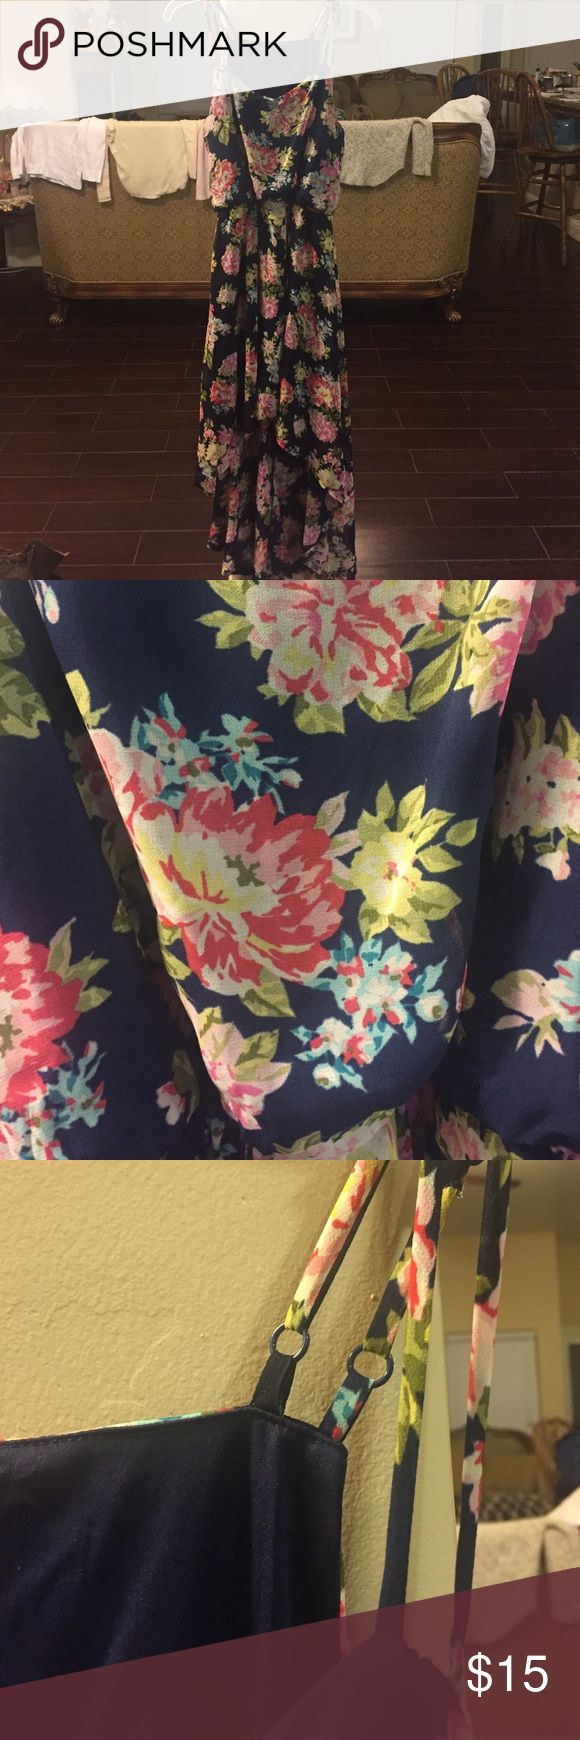 Flower print women's high low dress Flower print women's dress. High low style. Very flowy and great for summer and spring. Does not have a size tag but I am a medium and it fits. Offers welcomed. Dresses High Low